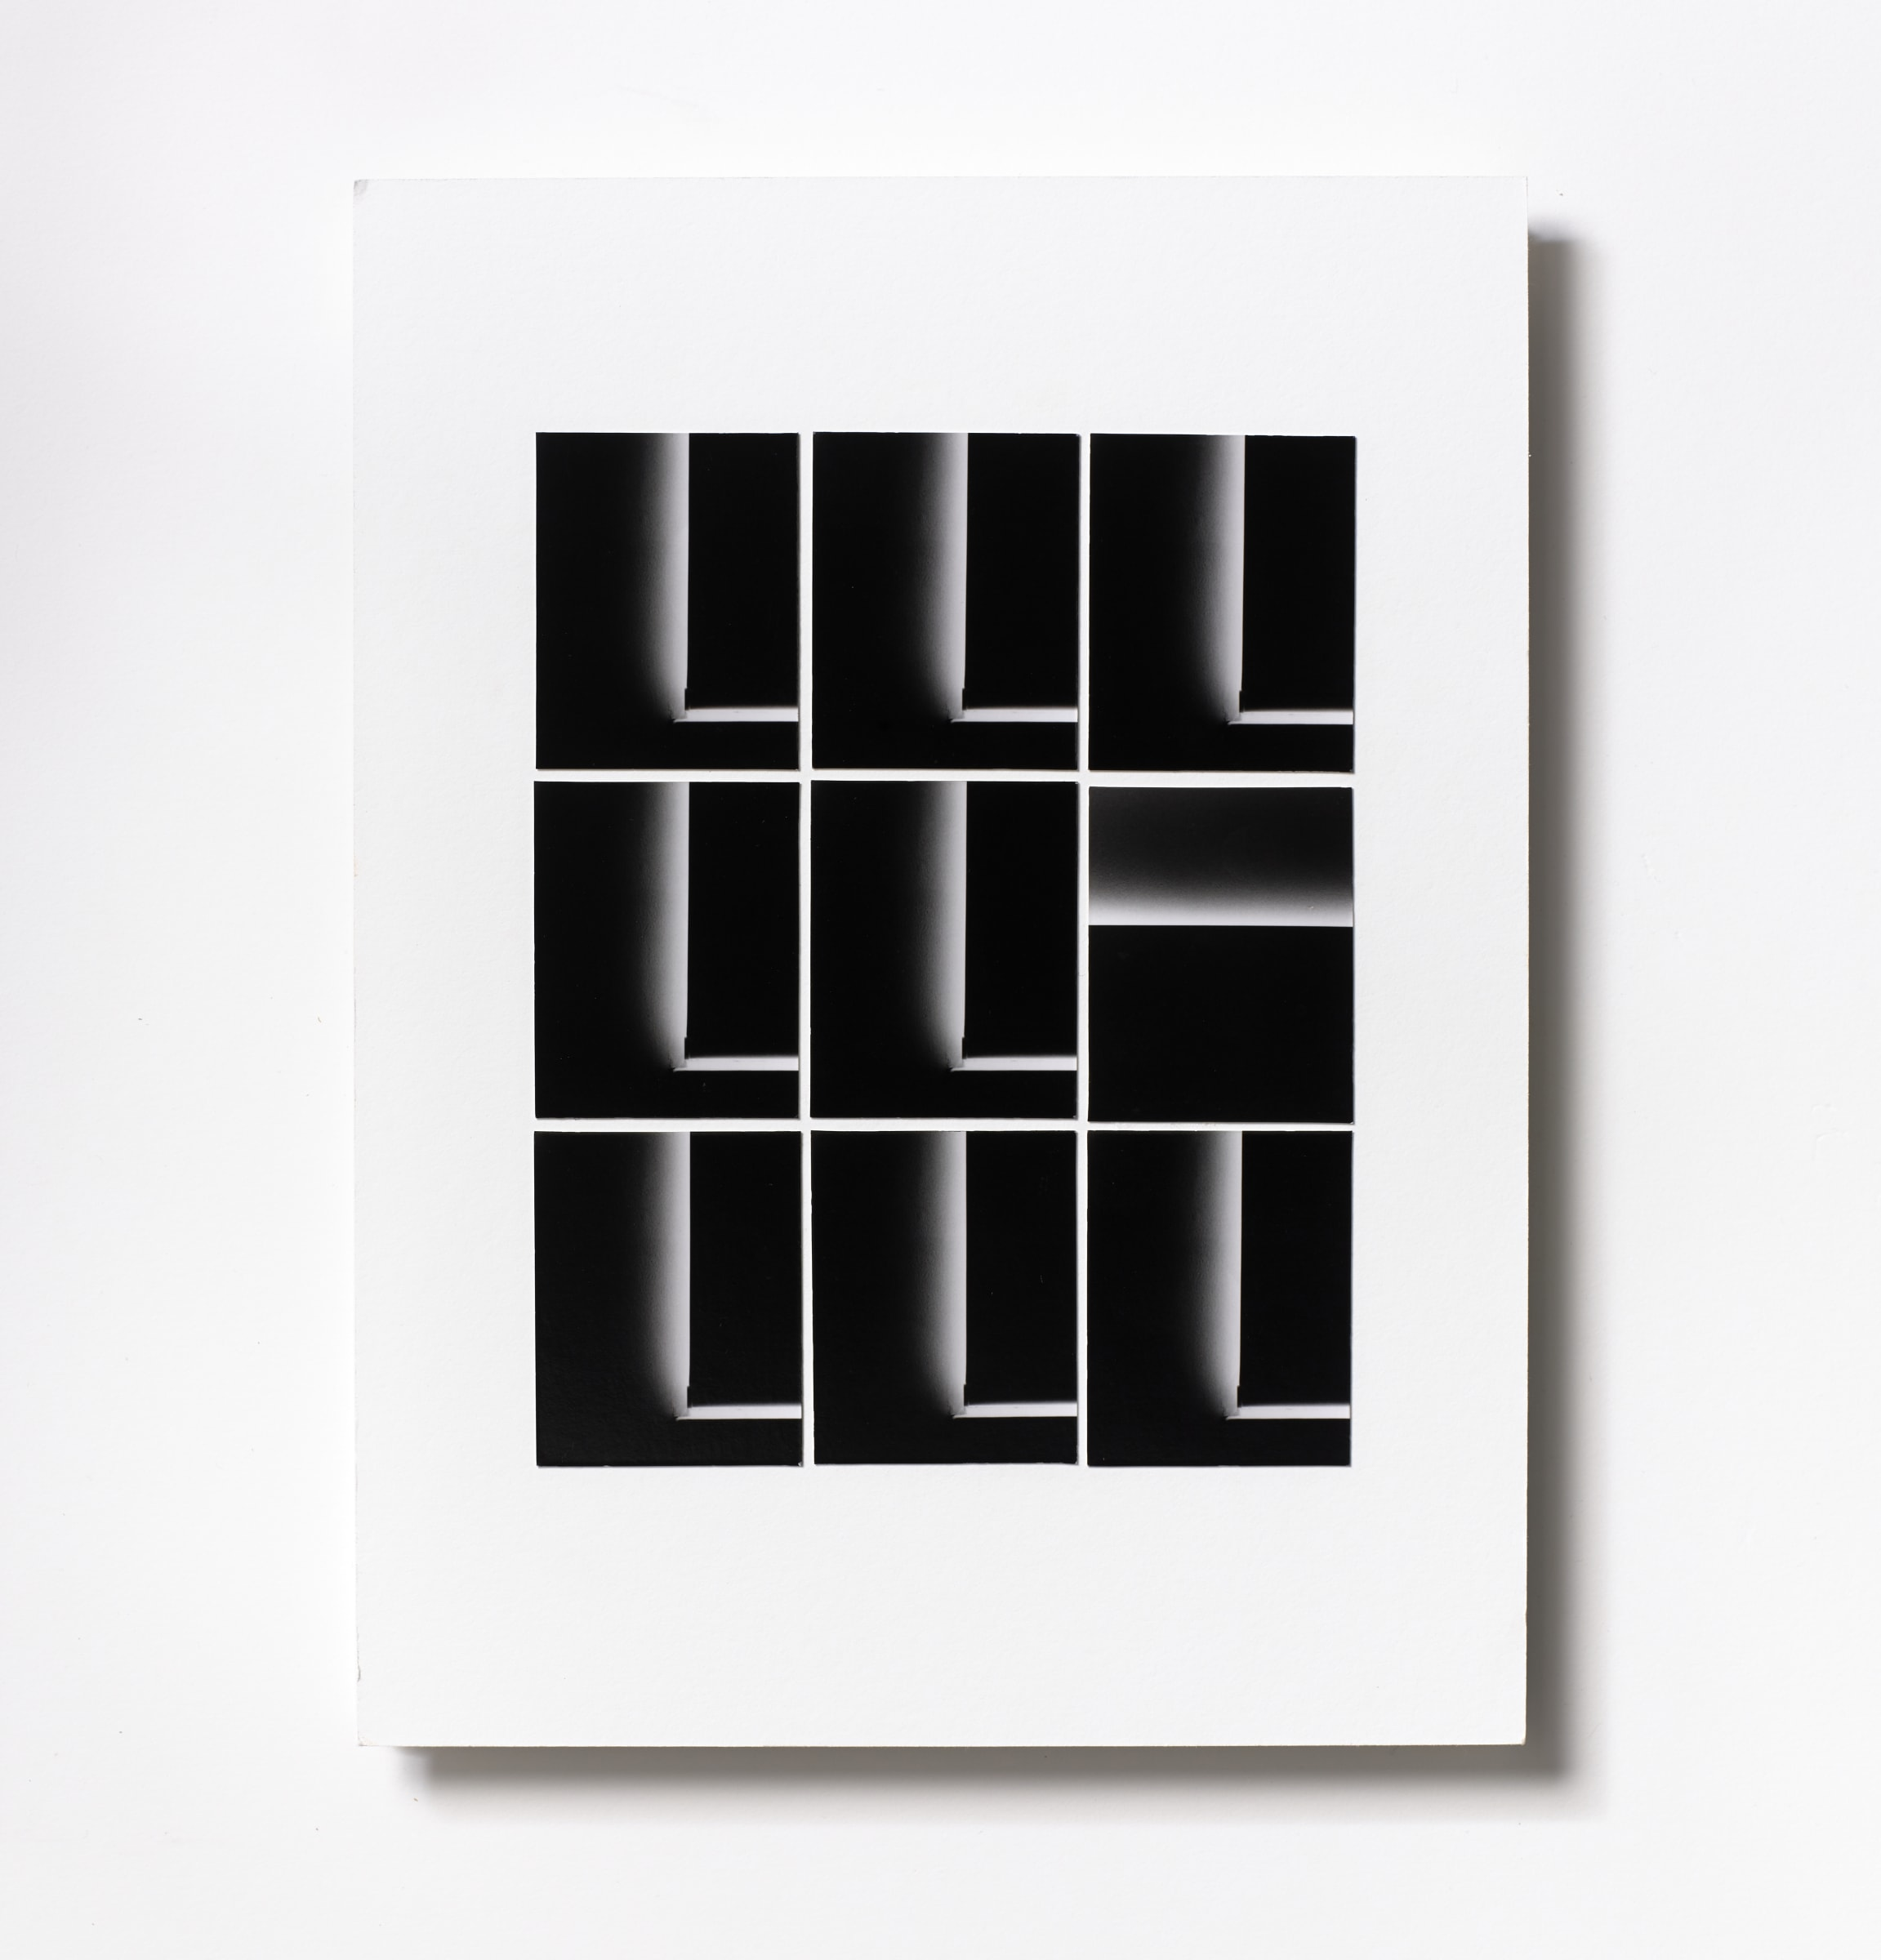 "<span class=""link fancybox-details-link""><a href=""/content/feature/114/artworks550/"">View Detail Page</a></span><div class=""medium"">Silver Gelatin Photogram Print Collage of nine handmade 2.5"" x 2"" silver gelatin prints from film negatives on a 12 x 9 inch 8-ply museum board<br /> Print only<br /> Unique</div> <div class=""dimensions"">30.5 x 22.9 cm<br /> 12 x 9 in</div>"